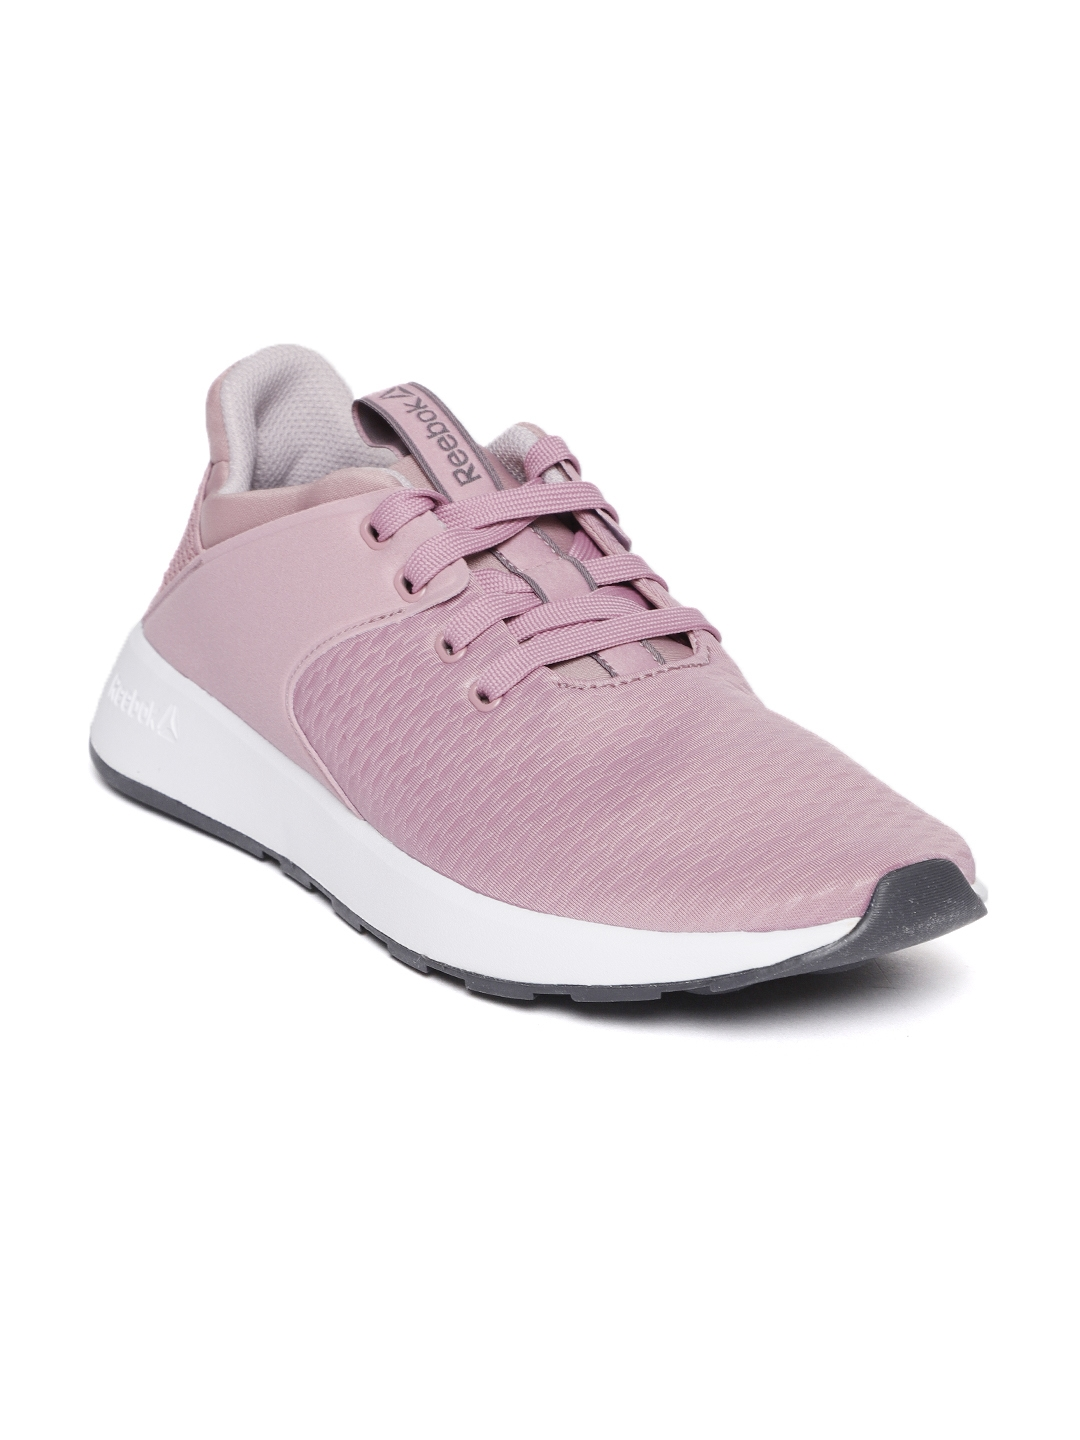 30ffb61190bad Reebok Women Dusty Pink Ever Road DMX Walking Shoes. This product is  already at its best price